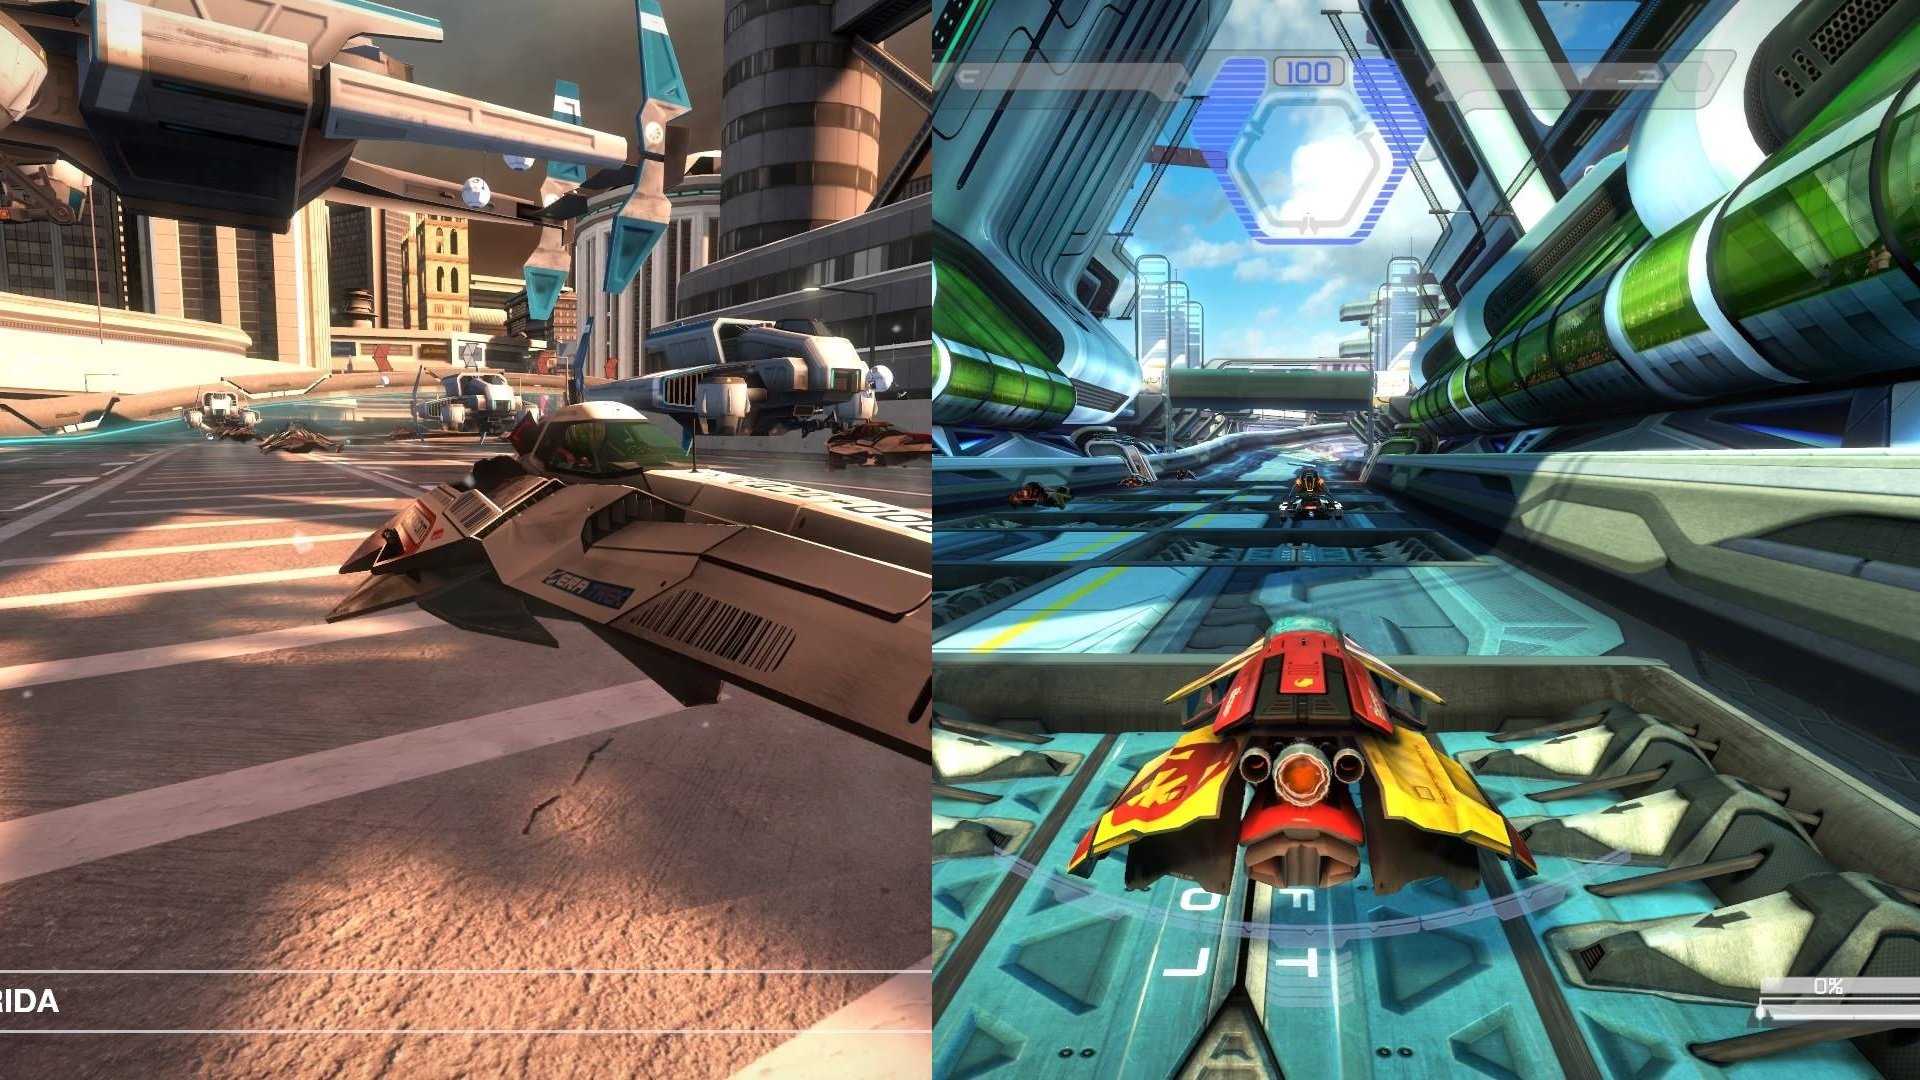 Wipeout: Omega Collection: Vale a Pena? 8